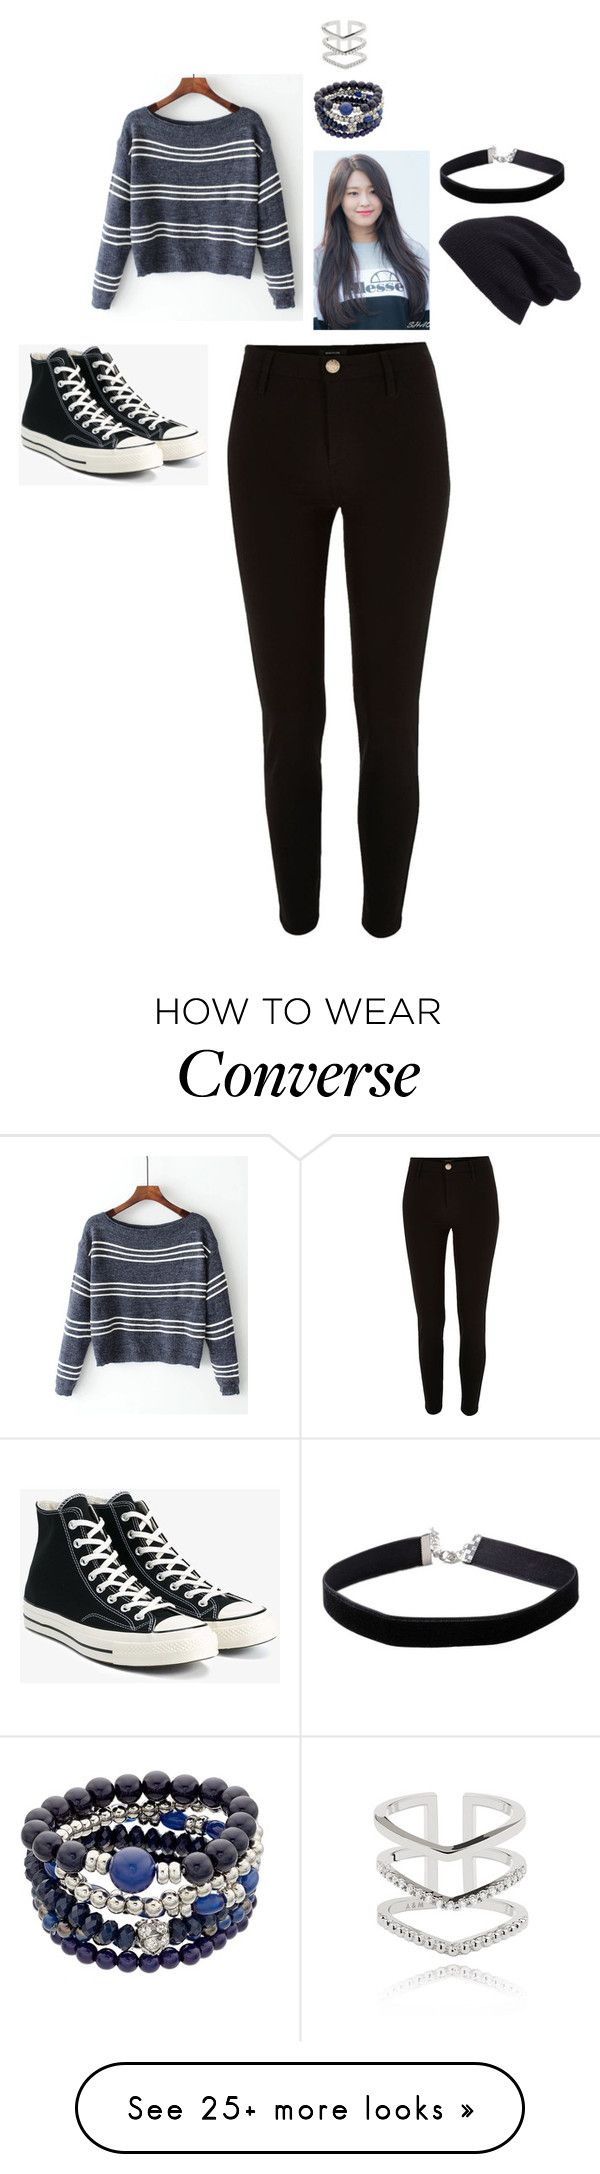 """""""MIestilo0841"""" by paolaalbo on Polyvore featuring River Island, Converse, Halogen, Miss Selfridge and Astrid & Miyu"""